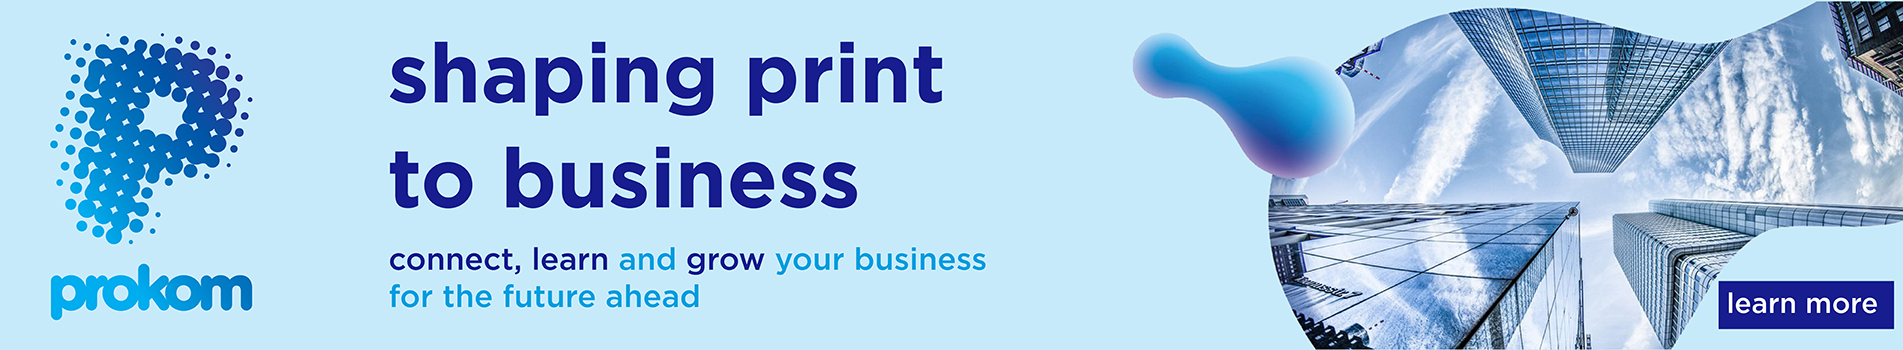 Prokom - Shaping print to business